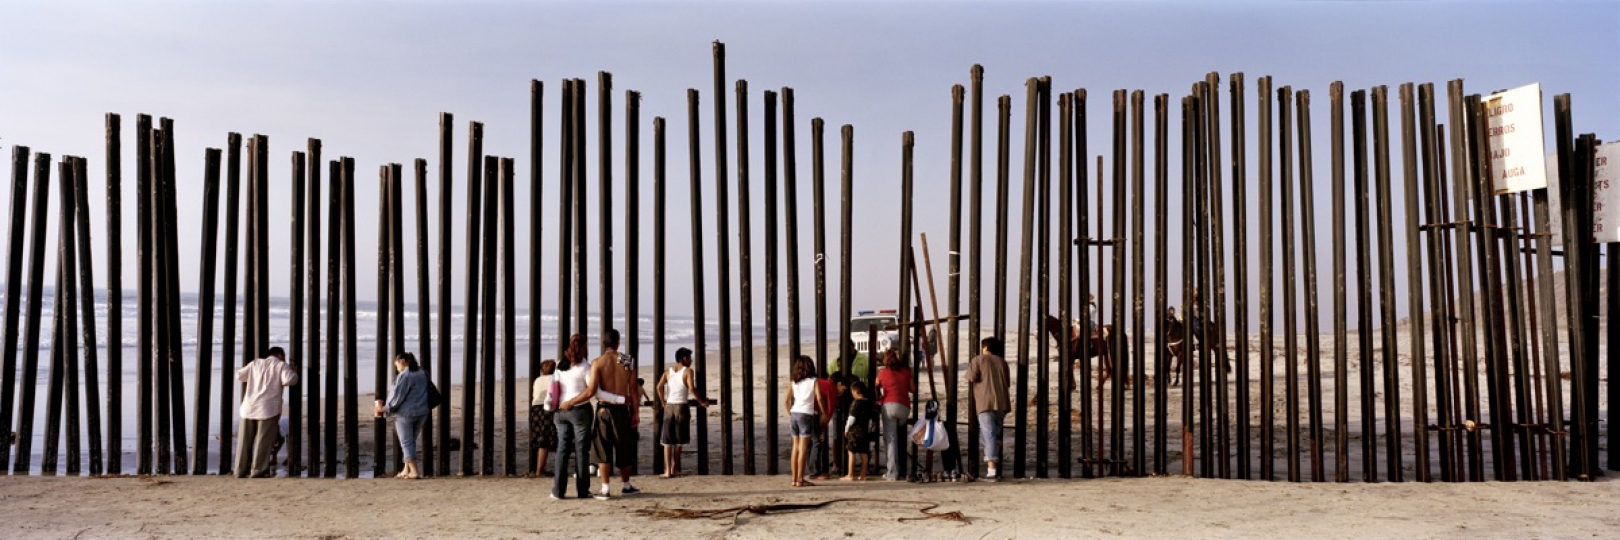 The very end of the Mexican-US border running into the Pacific Ocean in Tijuana, Mexico. November 2008. © Kai Wiedenhöfer